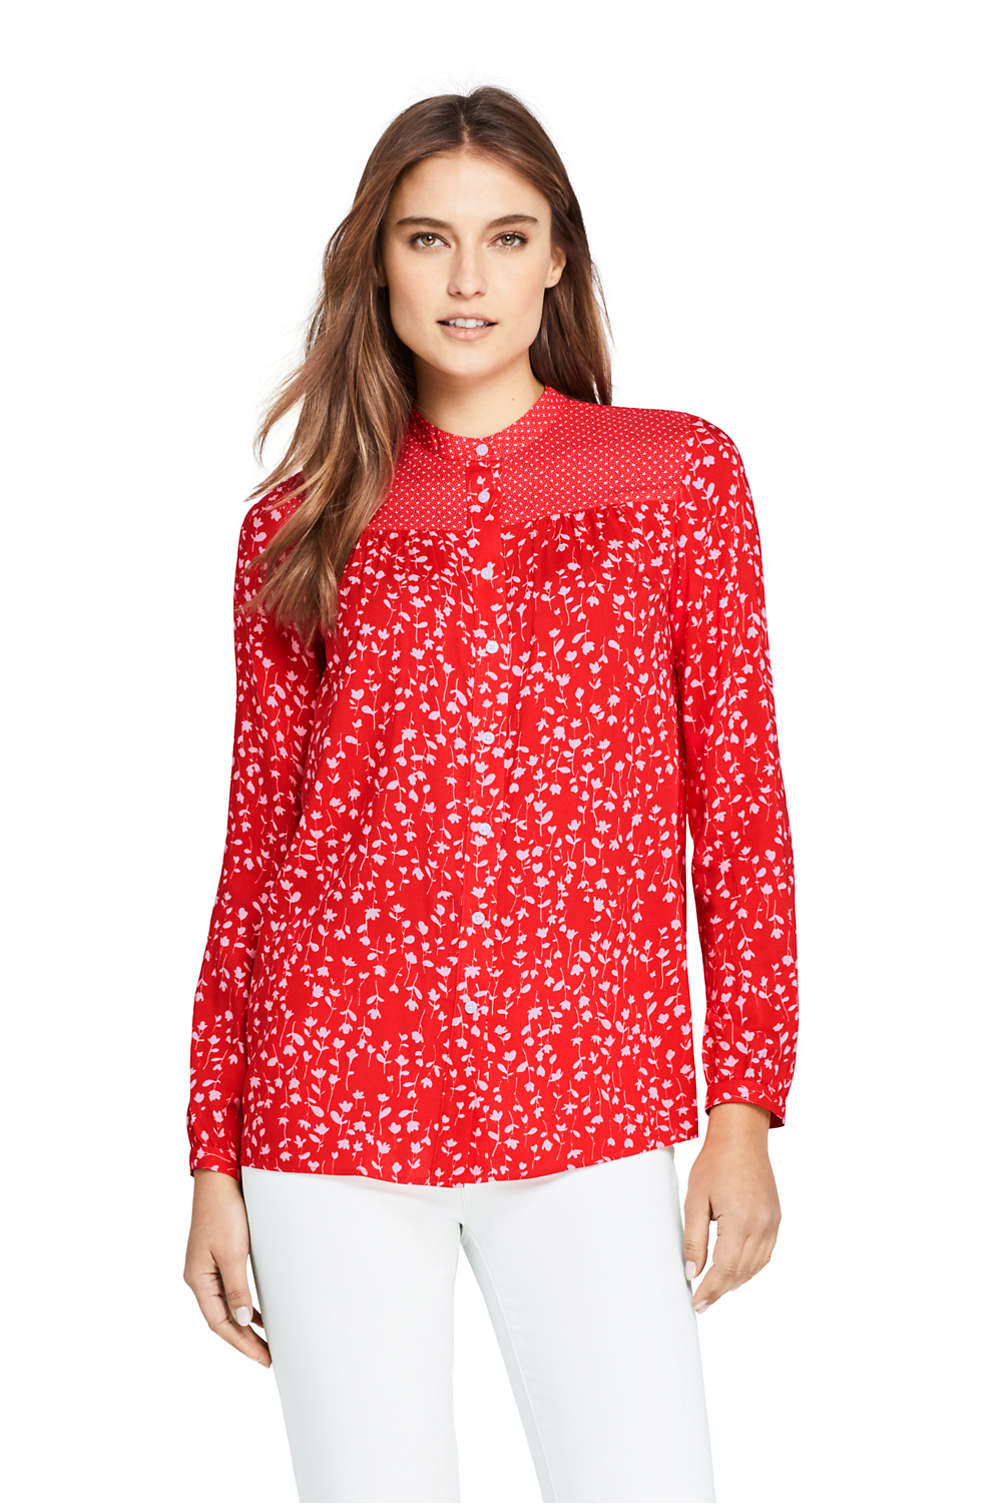 ca5f76f7d4 Women s Casual Pattern Soft Blouse from Lands  End